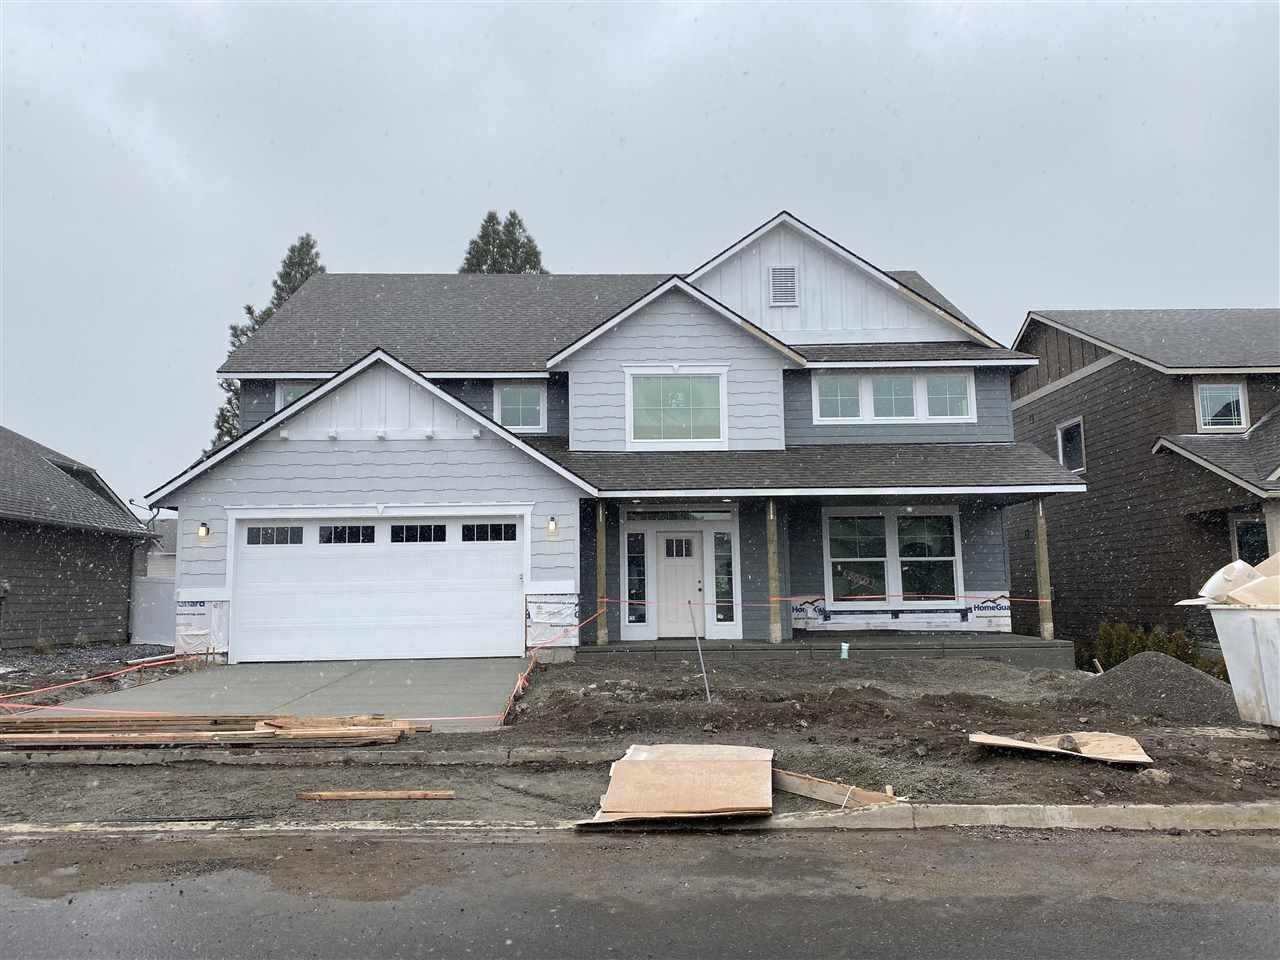 1726 S Sundance Dr, Spokane Valley, WA 99016 - #: 201923029